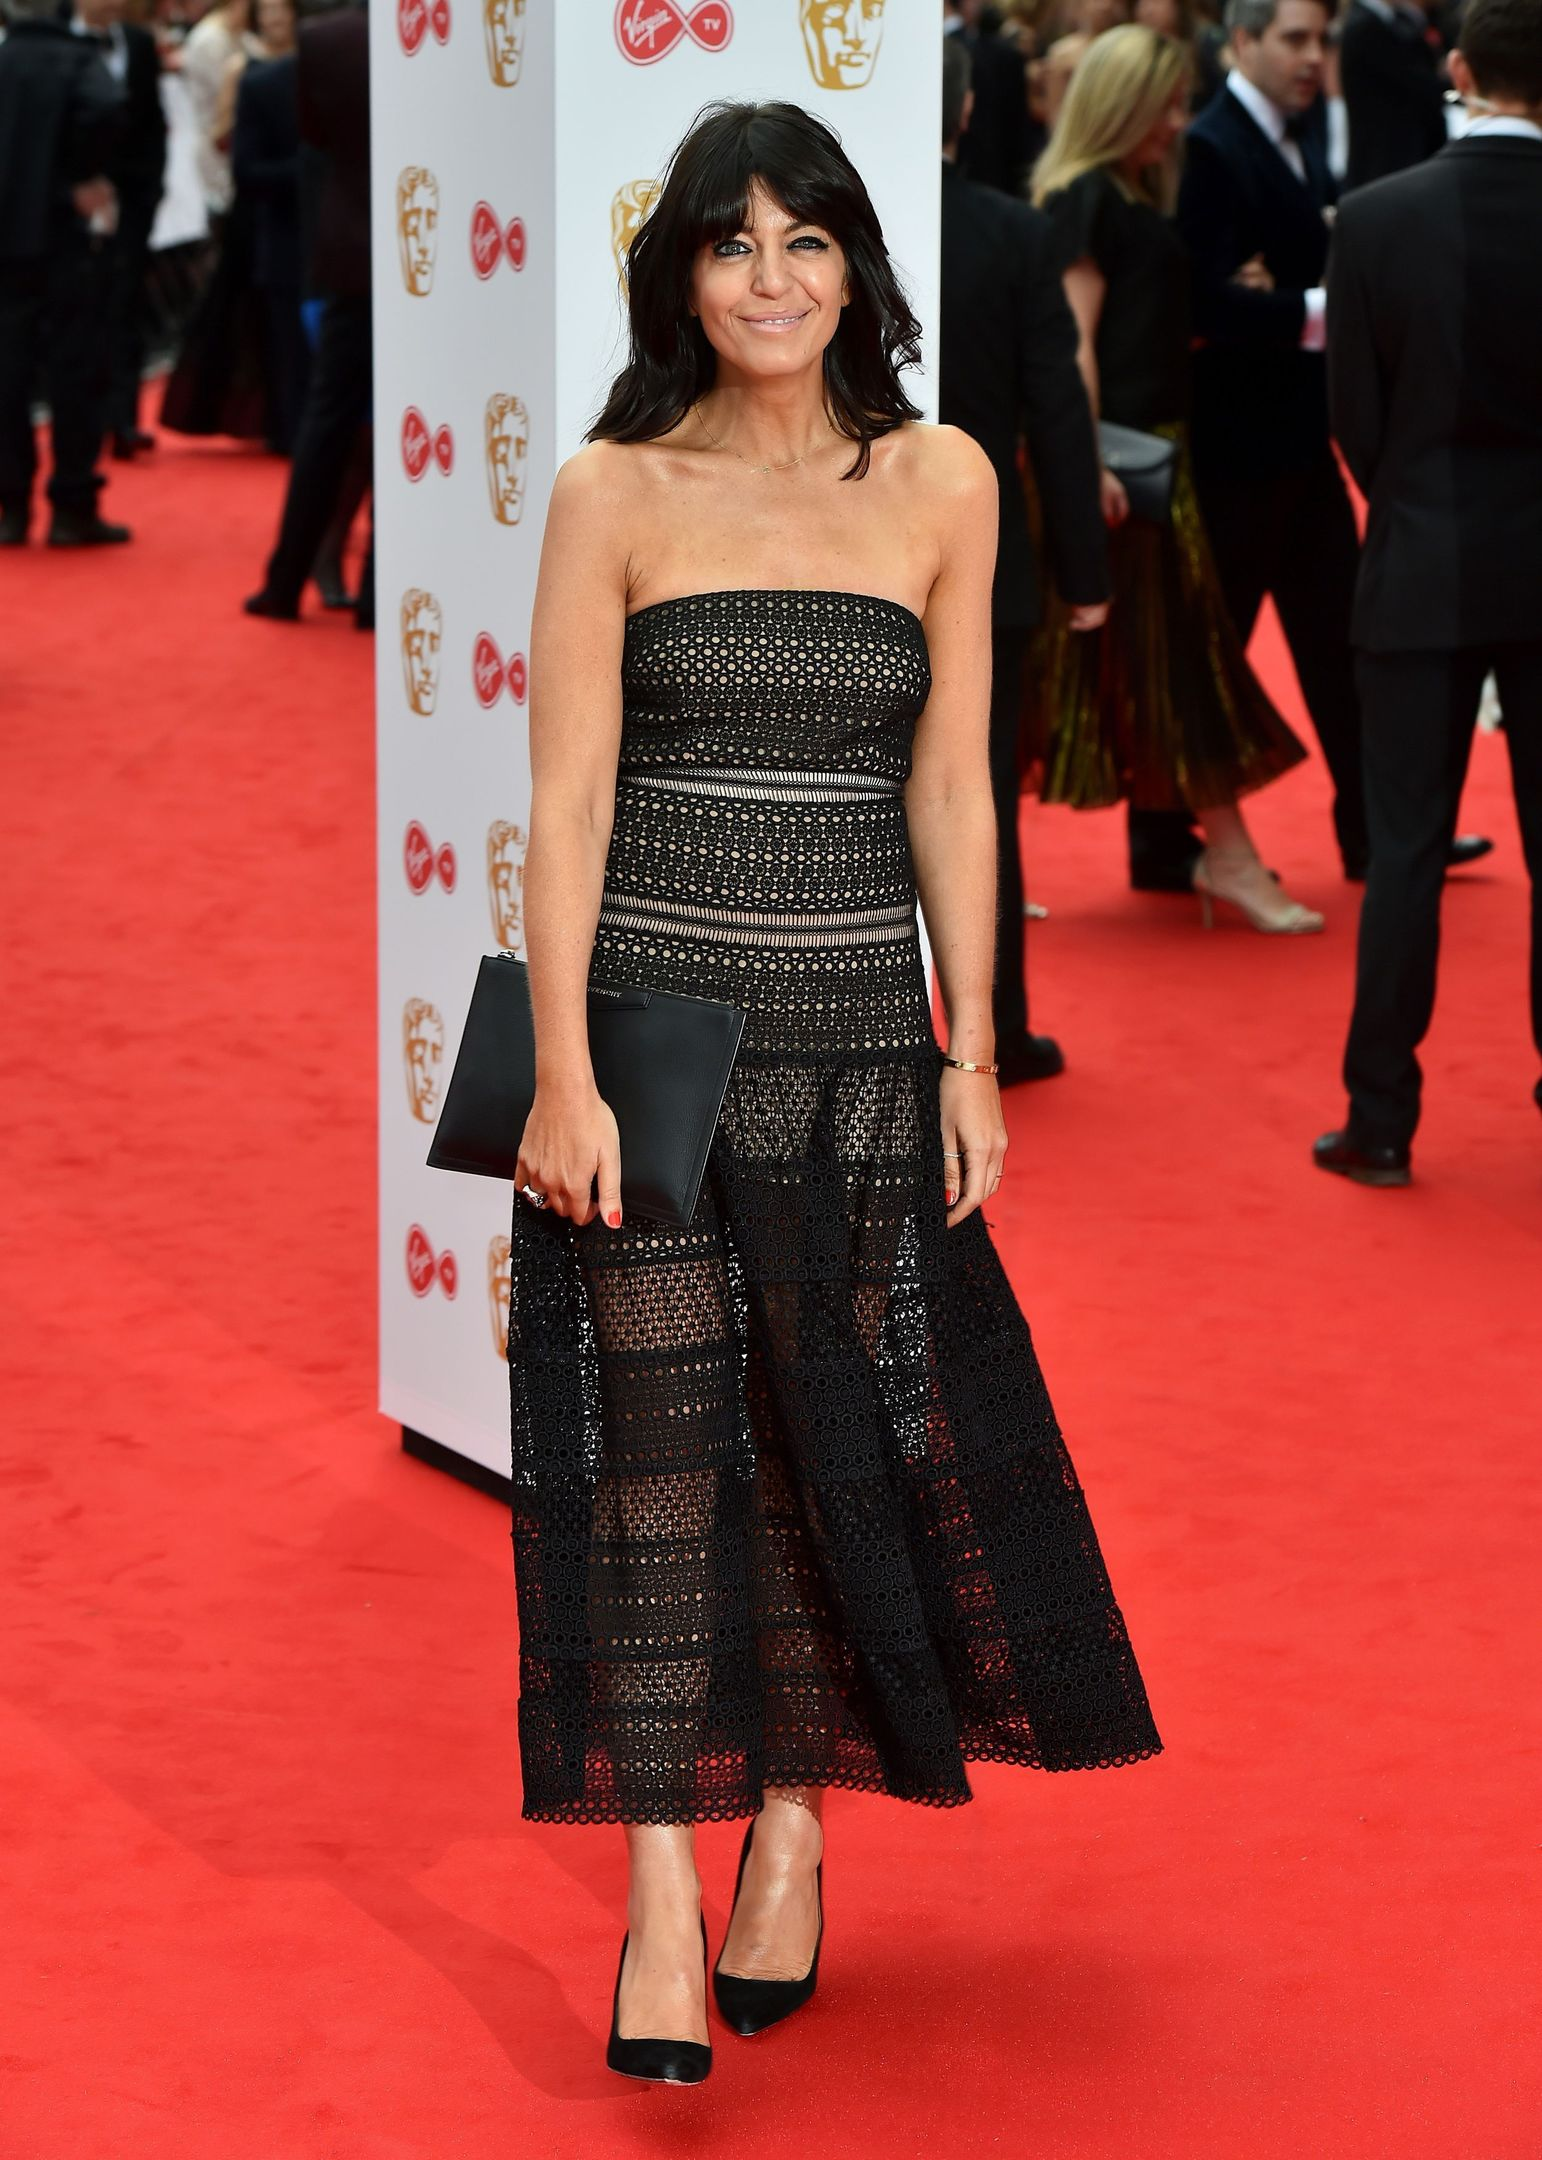 14/05/17 PA File Photo of Claudia Winkleman at the Virgin TV British Academy Television Awards 2017 held at Festival Hall at Southbank Centre, London. See PA Feature FASHION Stripes. Picture credit should read: Matt Crossick/PA Photos. WARNING: This picture must only be used to accompany PA Feature FASHION Stripes